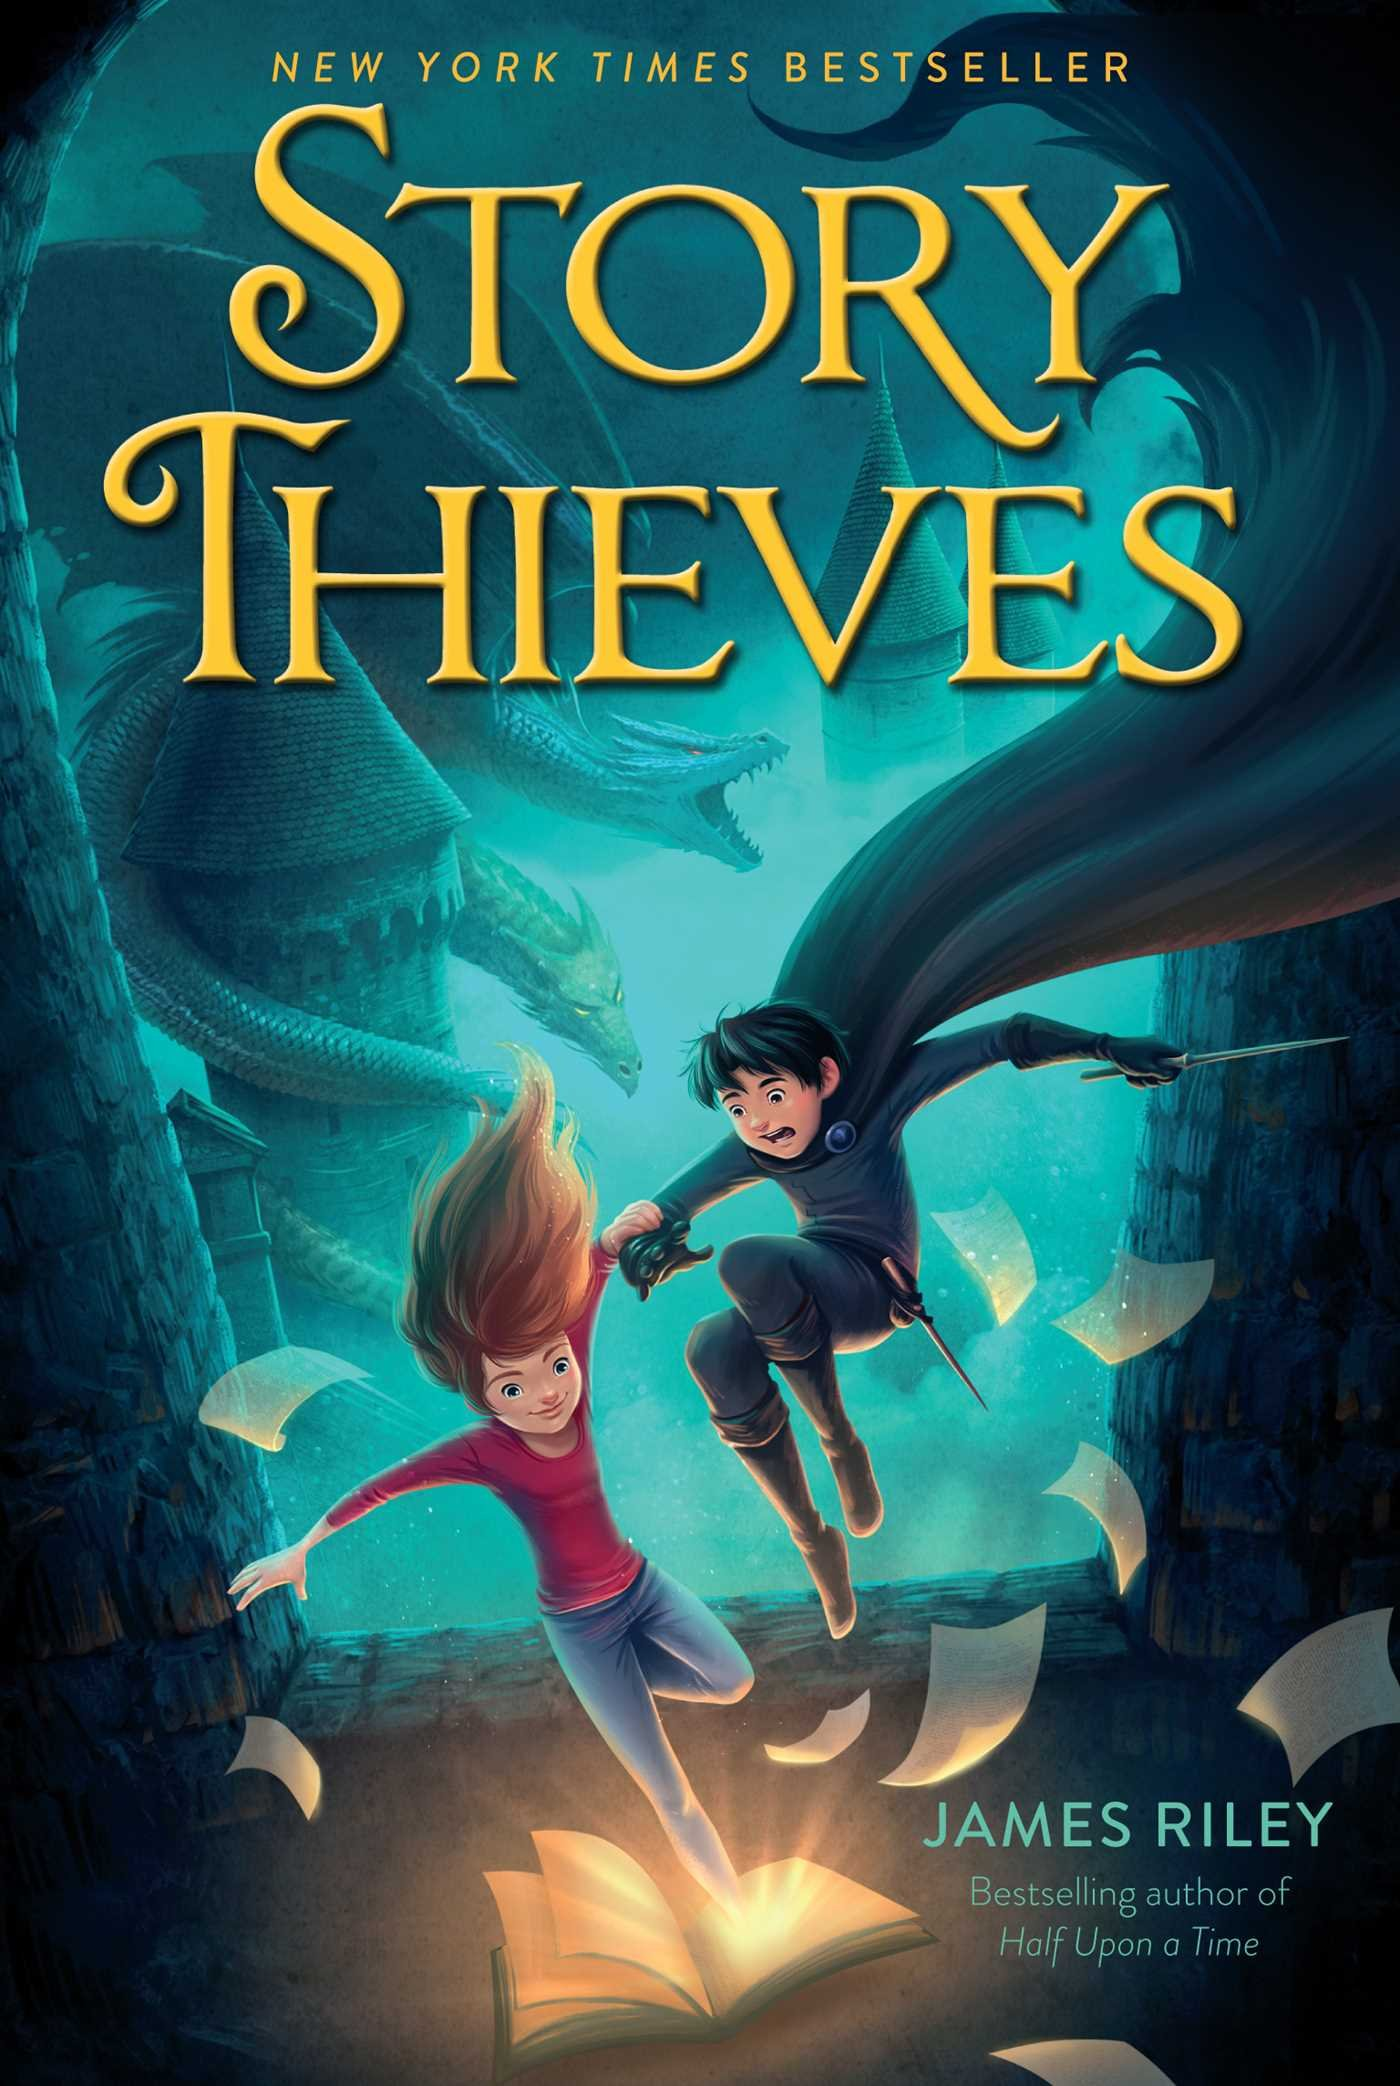 STORY THIEVES - Real life can be boring, if you're a fan of books like Owen Connors is. But when he discovers his classmate Bethany has the power to literally jump into books, , life suddenly gets a lot more exciting.Bethany's had this power all of her life, due to the fact that her father is a fictional character. But ever since her father's gone missing and her mother banned all books from their house, Bethany's been searching for her dad in secret, keeping her powers to herself. But what happens when her classmate Owen finds out about them?